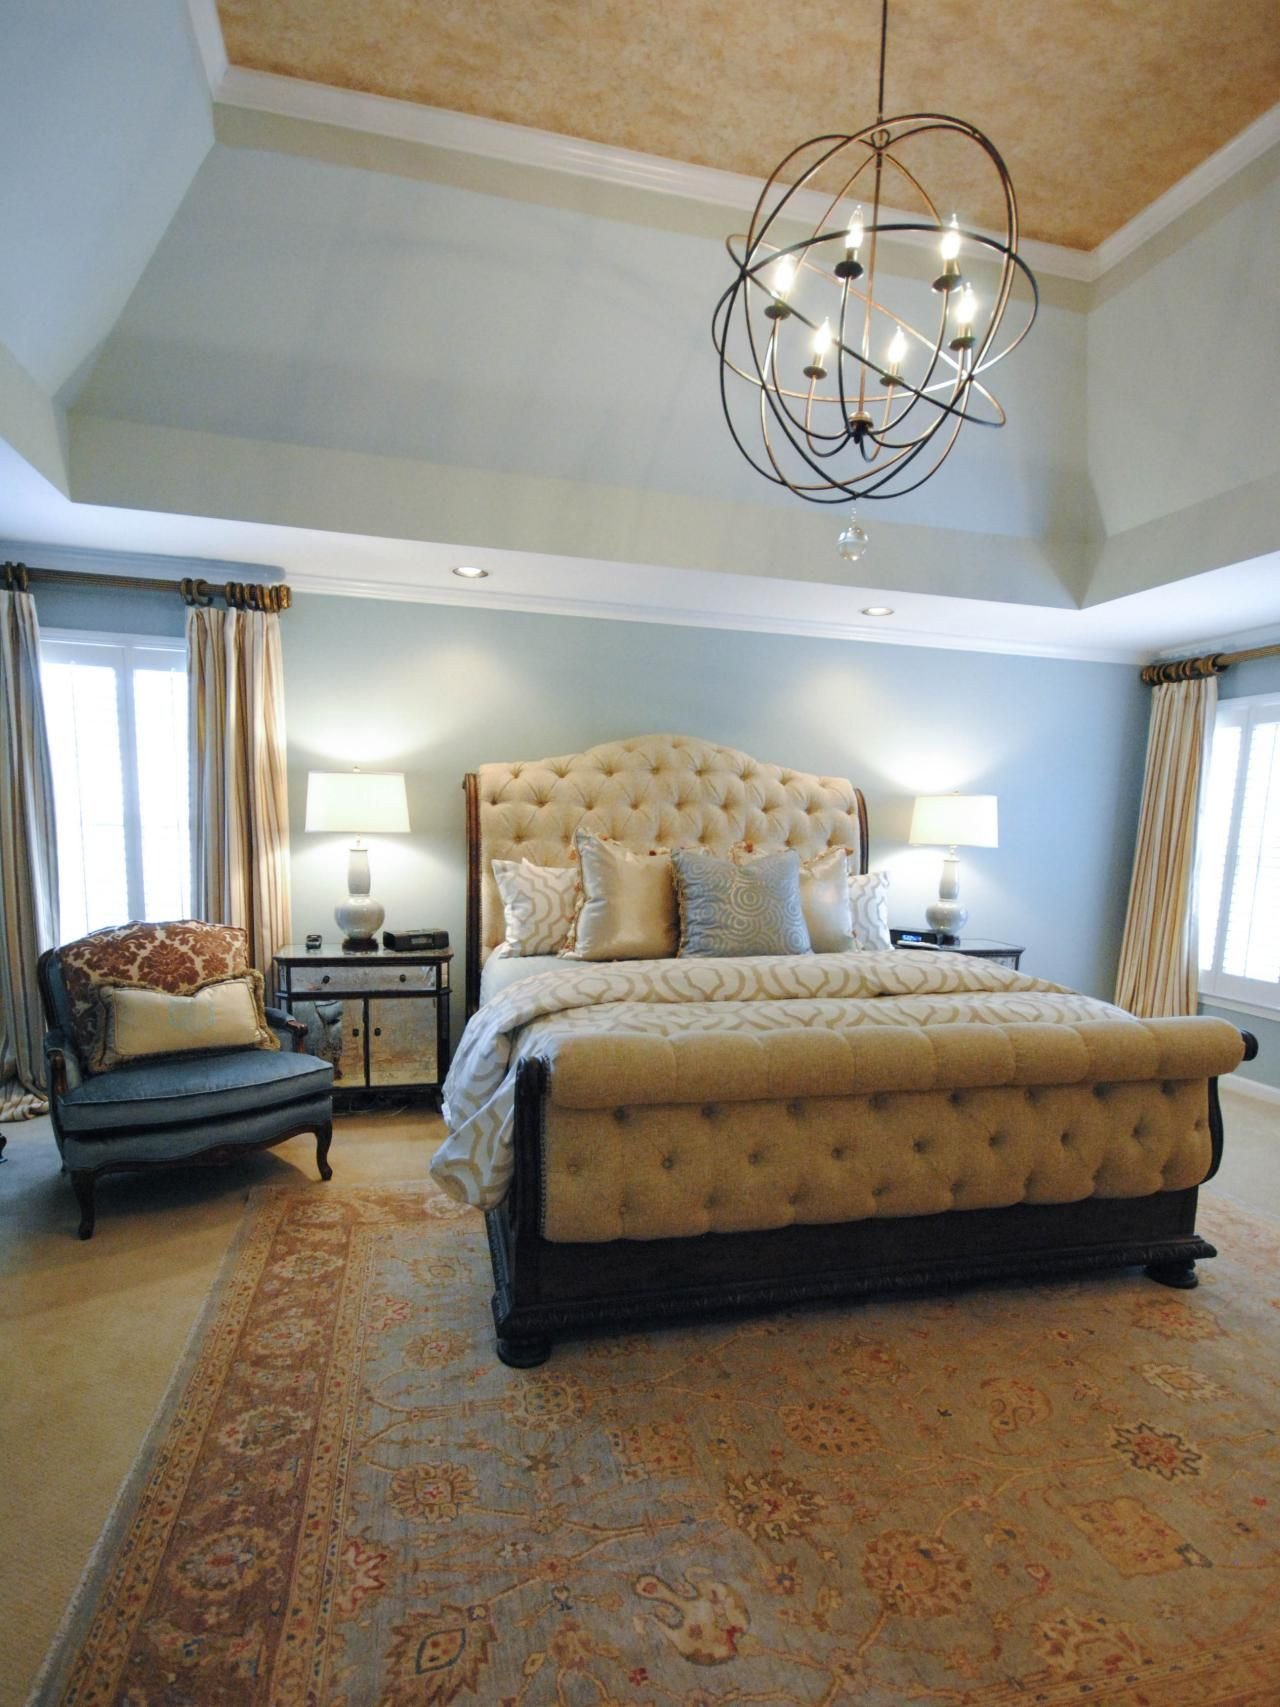 Bedroom Sitting area Ideas Fresh Of Dreamy Bedroom Chandeliers